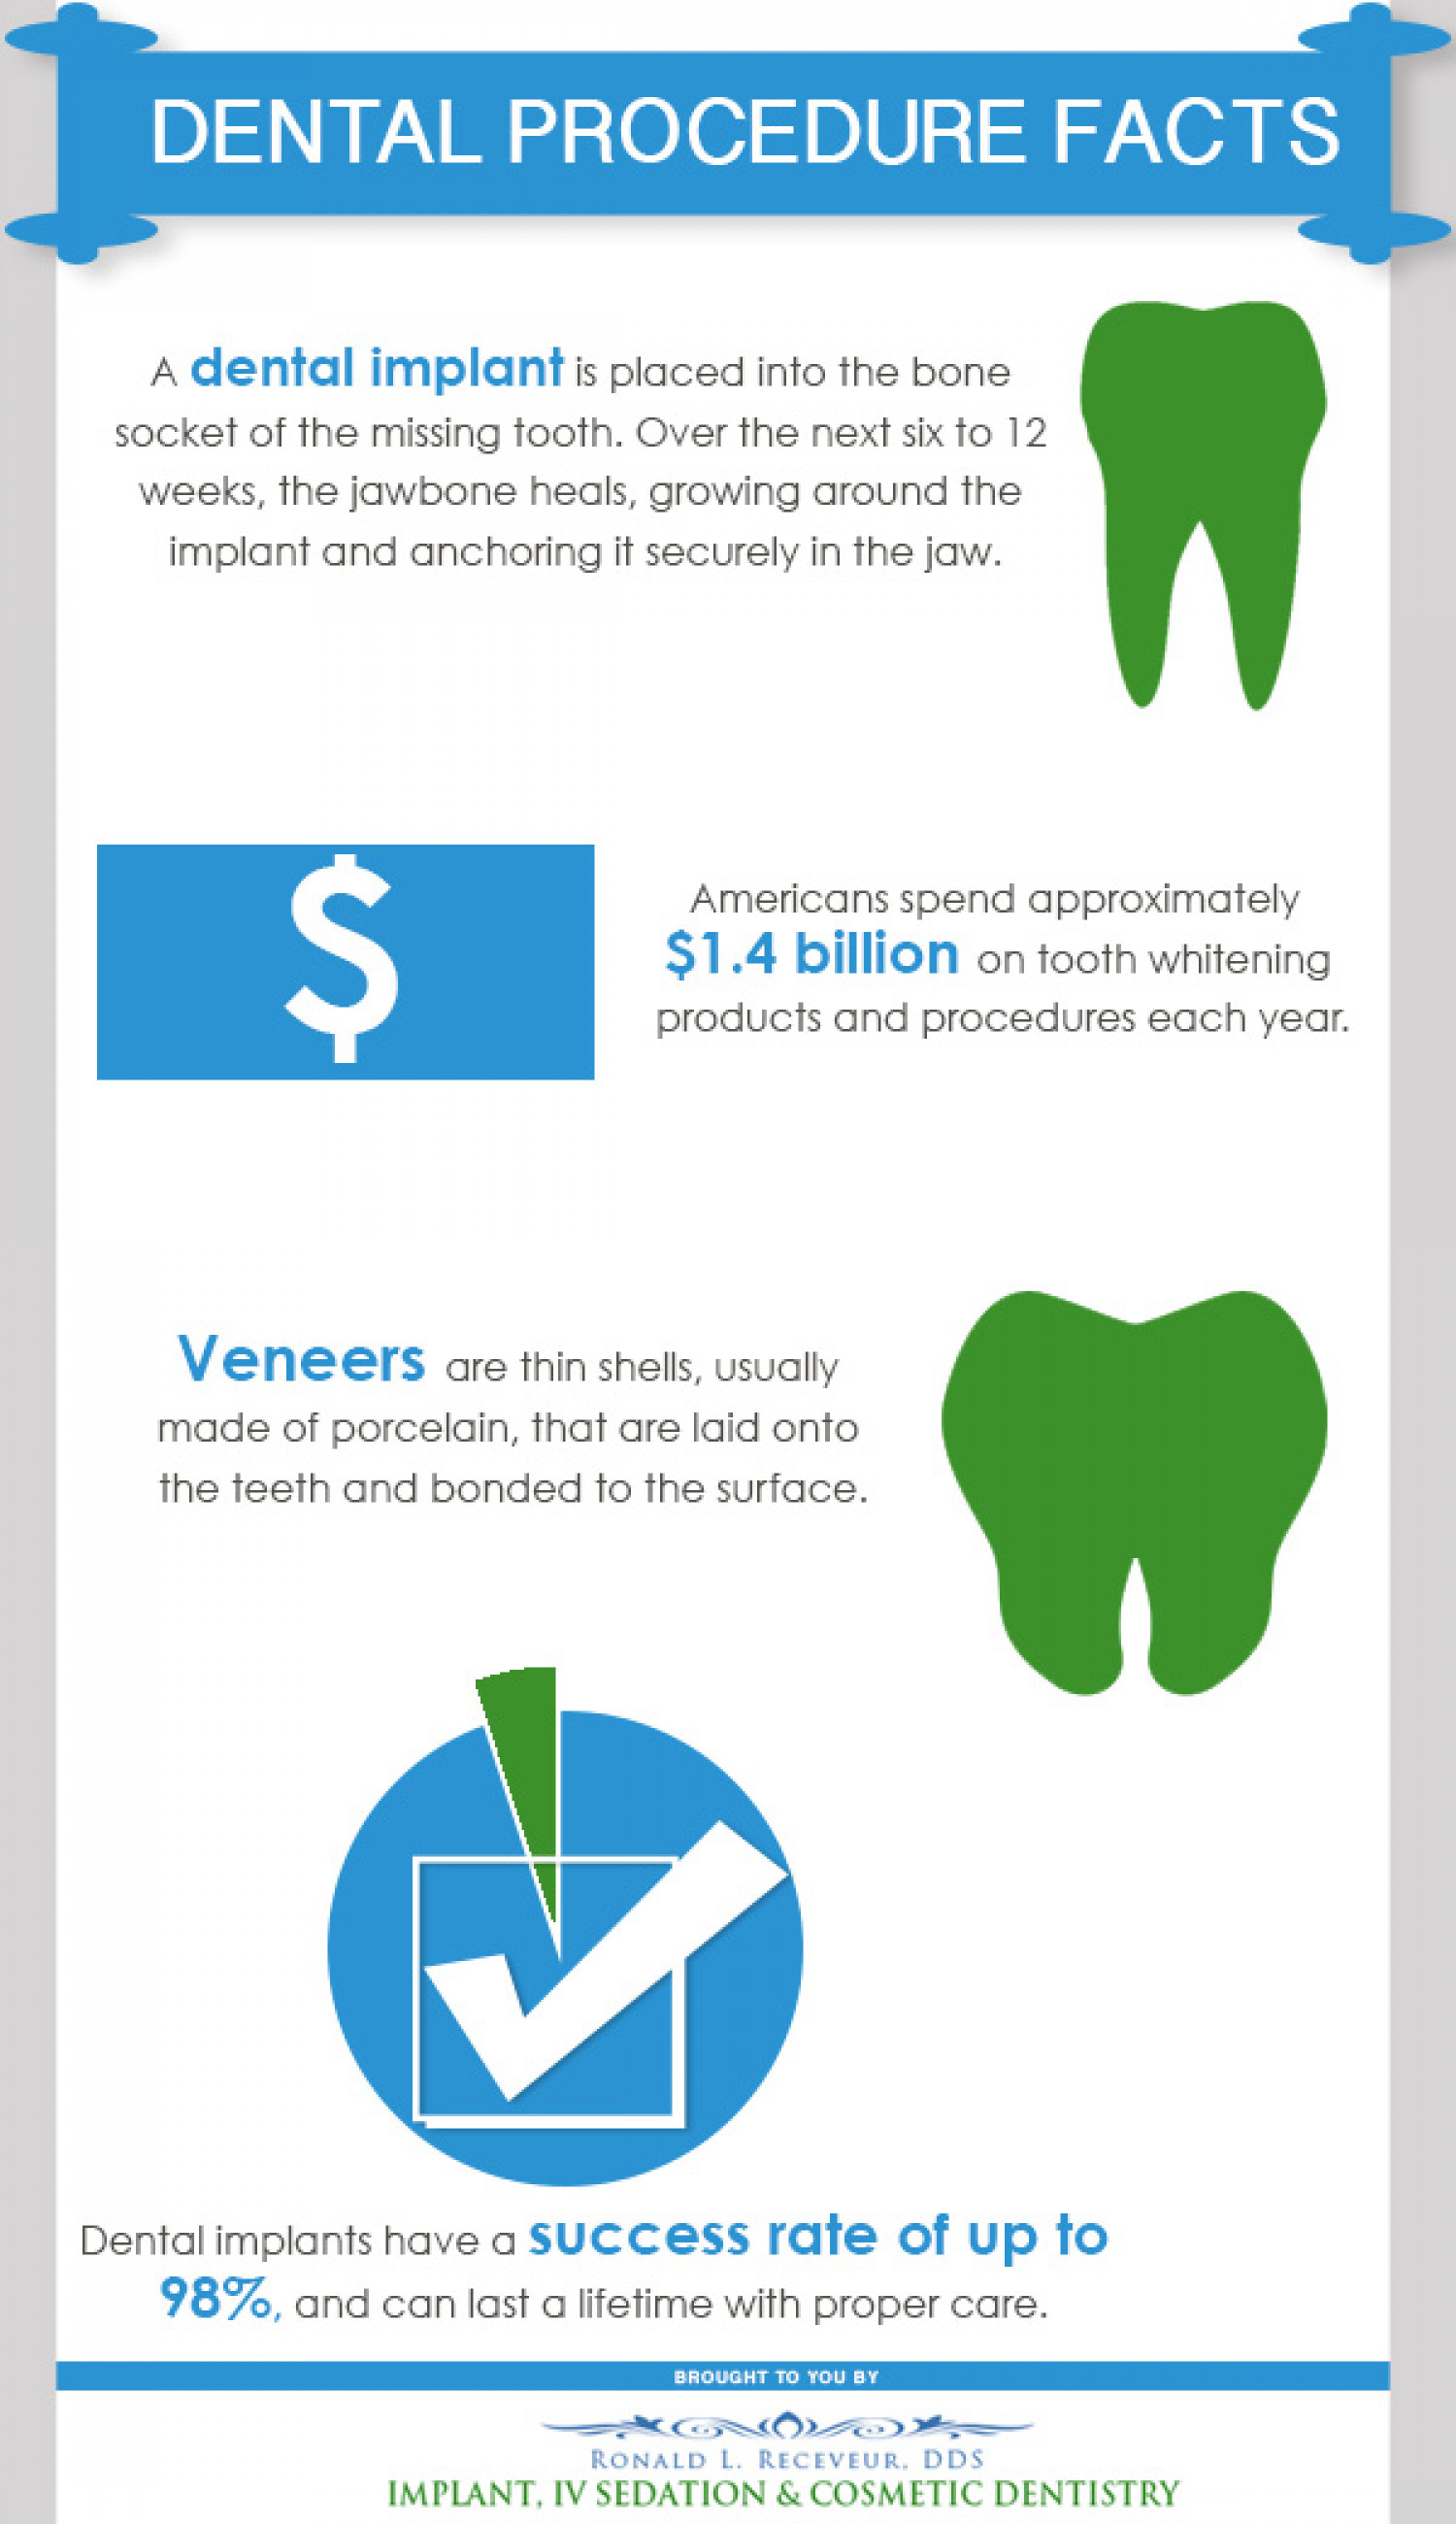 Dental Procedure Facts Infographic